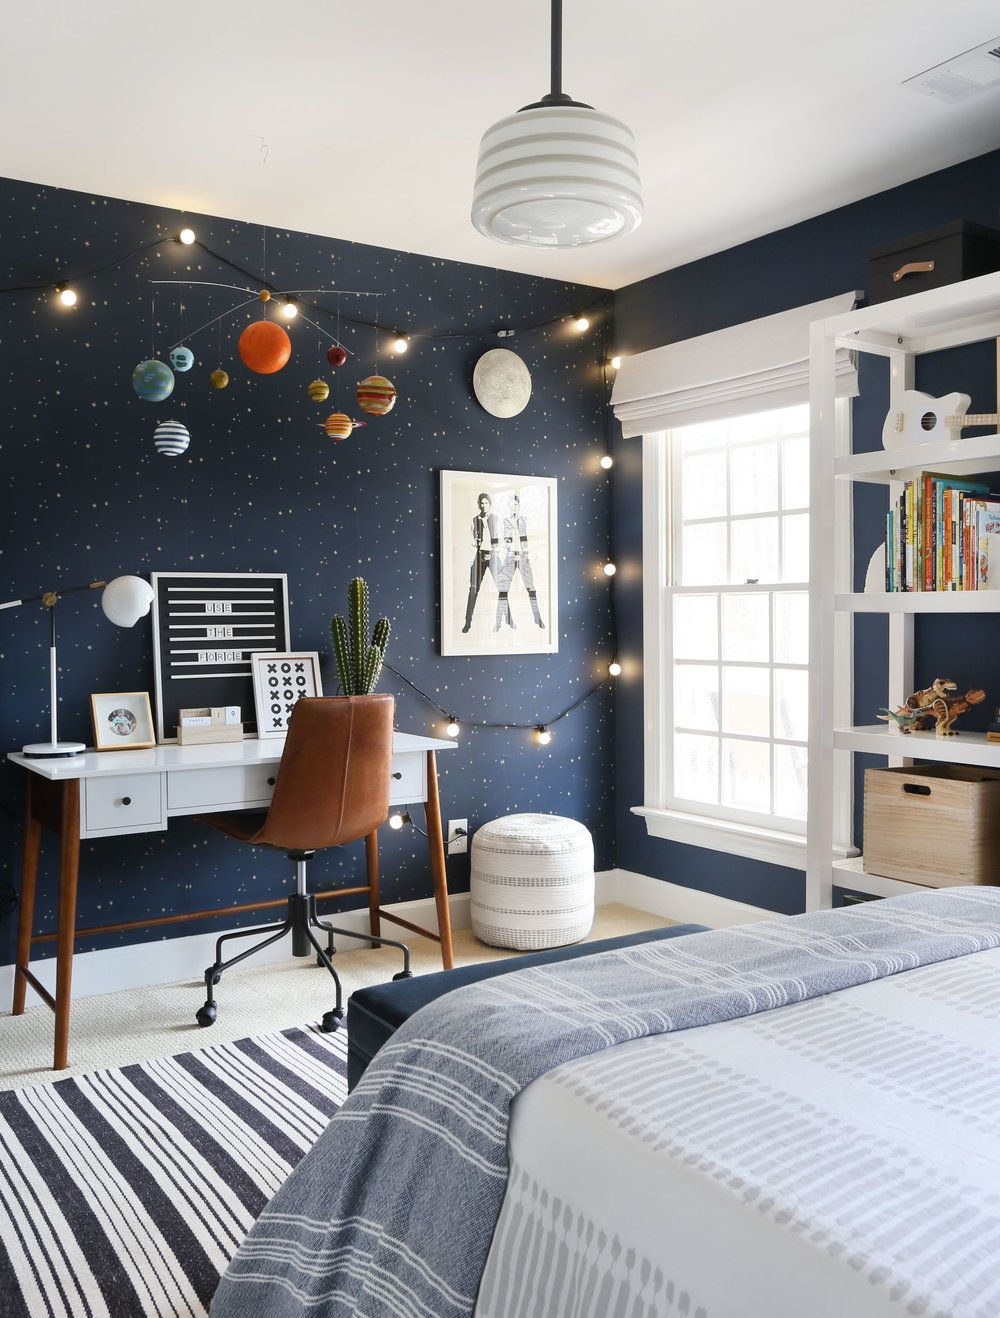 A Bold Playful And Out Of This World Kid S Room Sunny Circle Studio Looking For Boy S Room Ideas Th Boy Bedroom Design Outer Space Bedroom Boy Room Paint